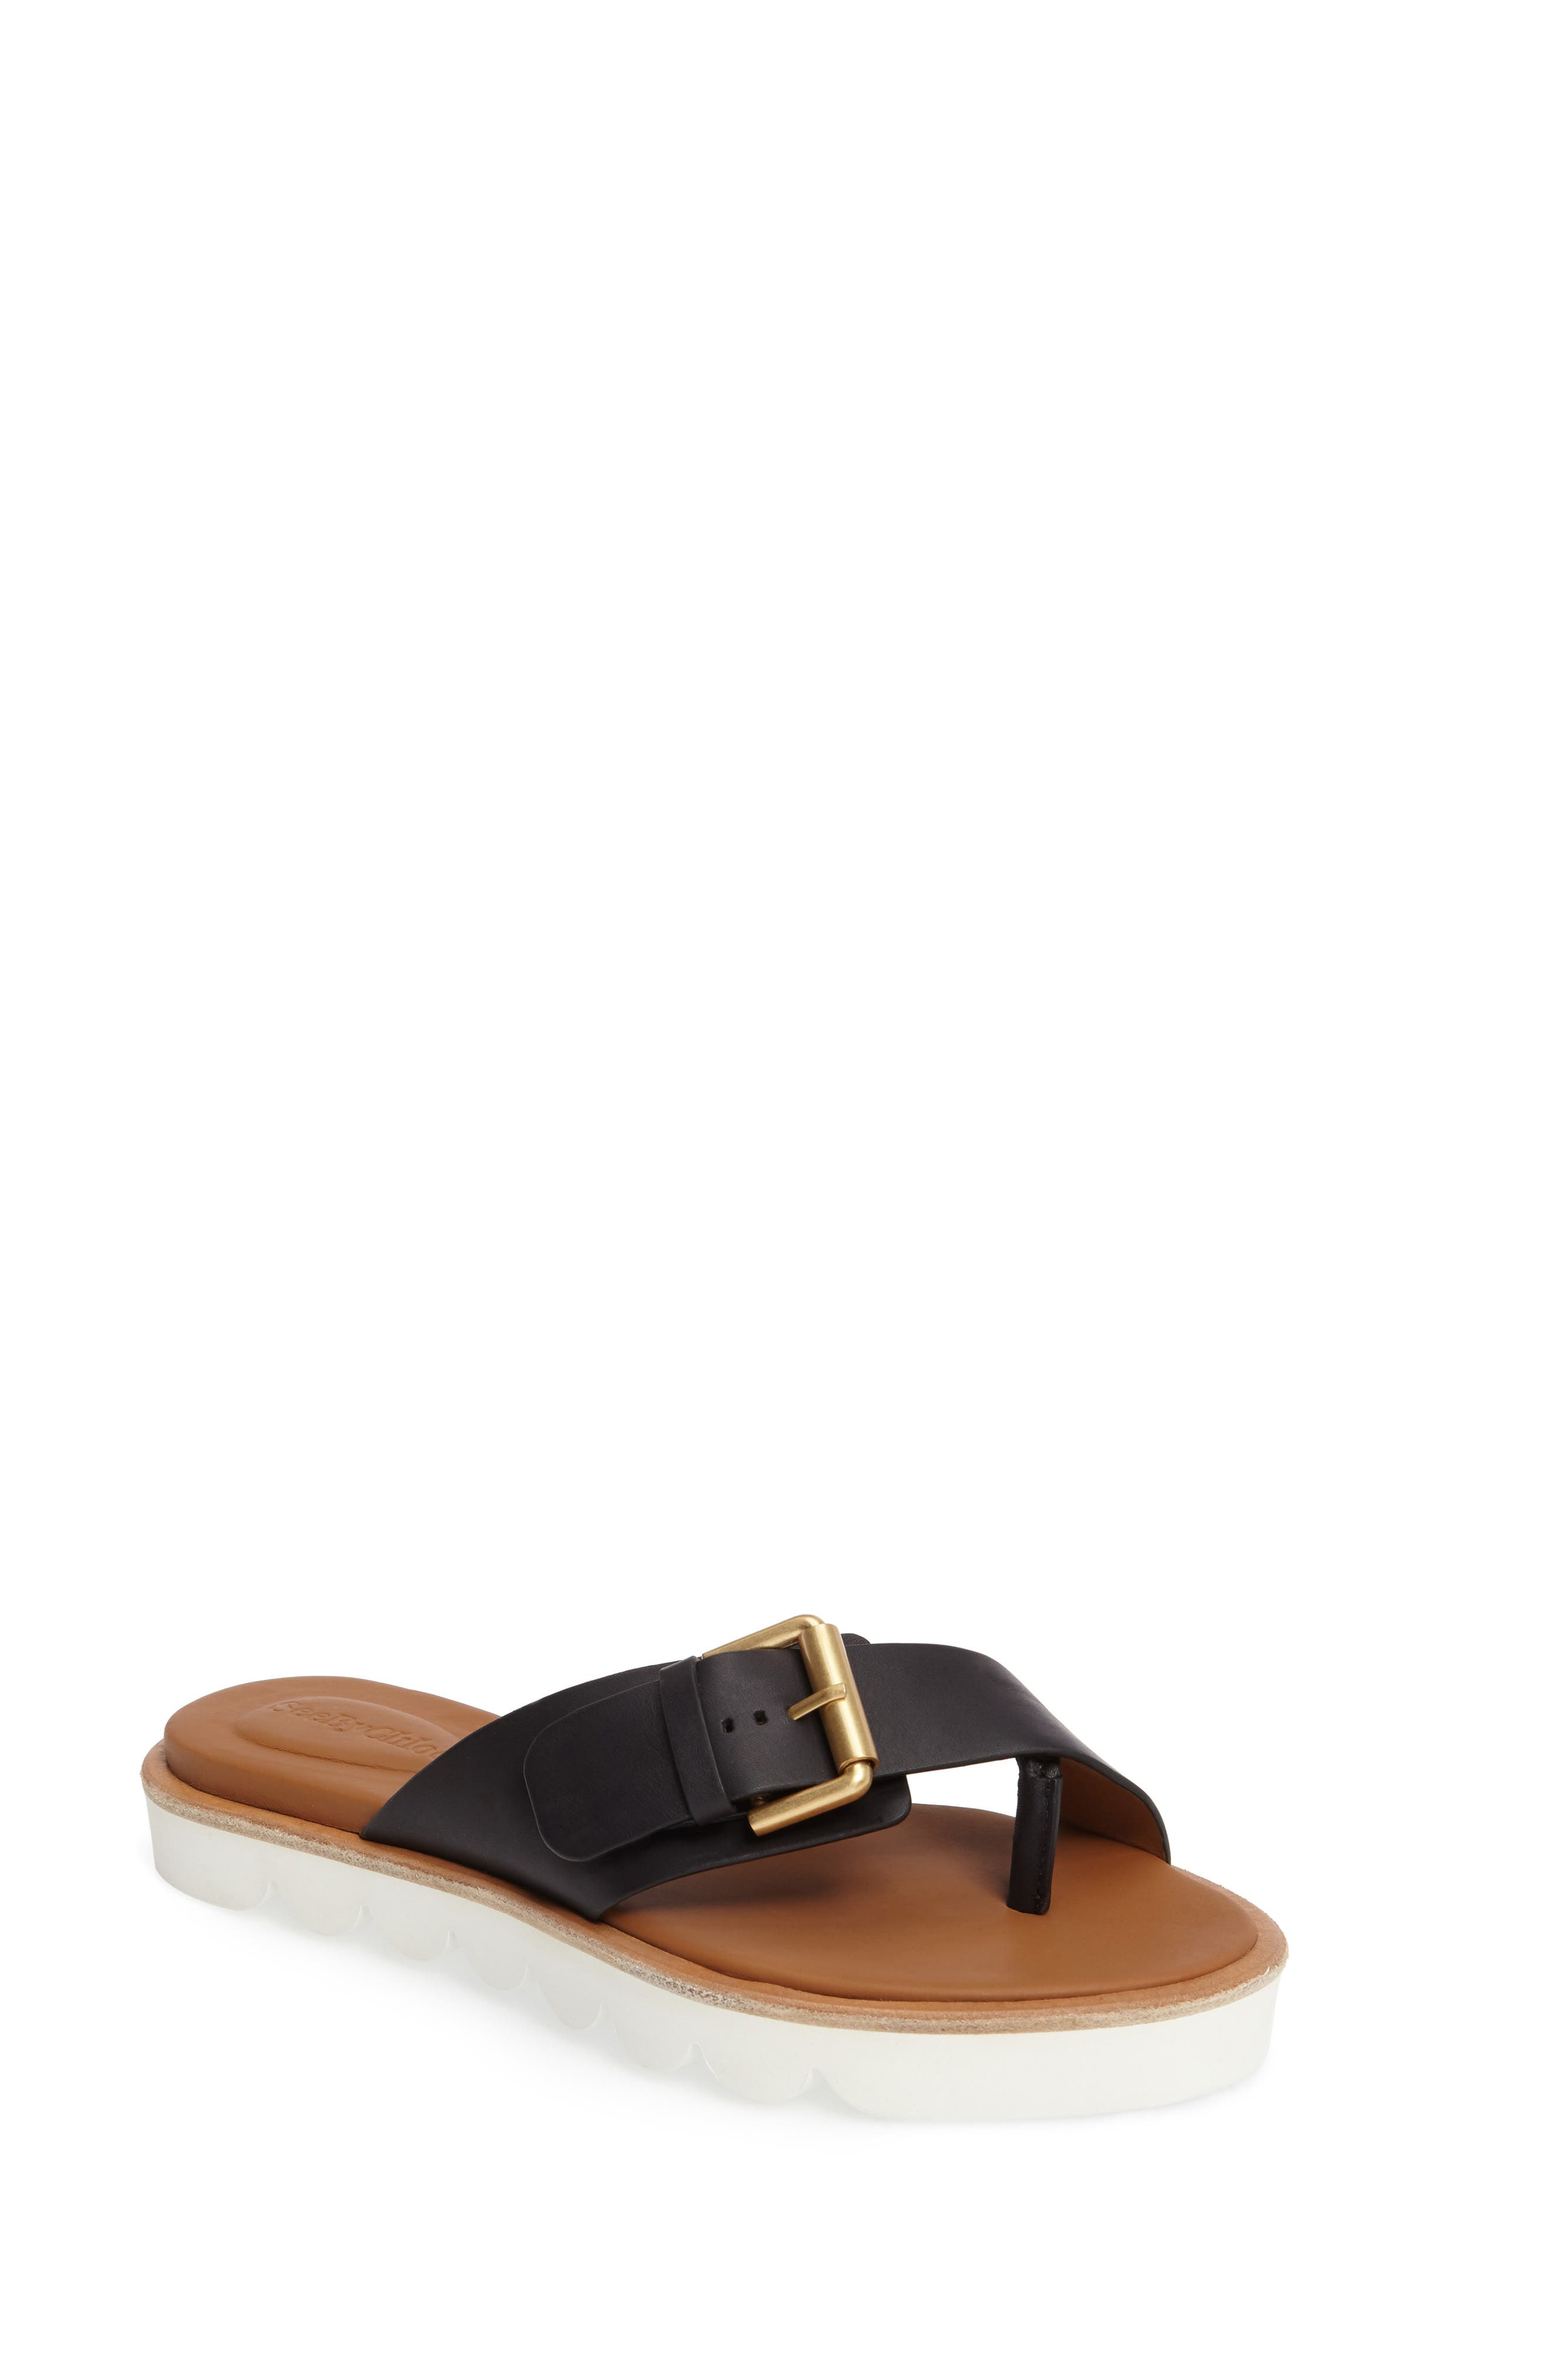 See by Chloé Tiny Flip Flop (Women)